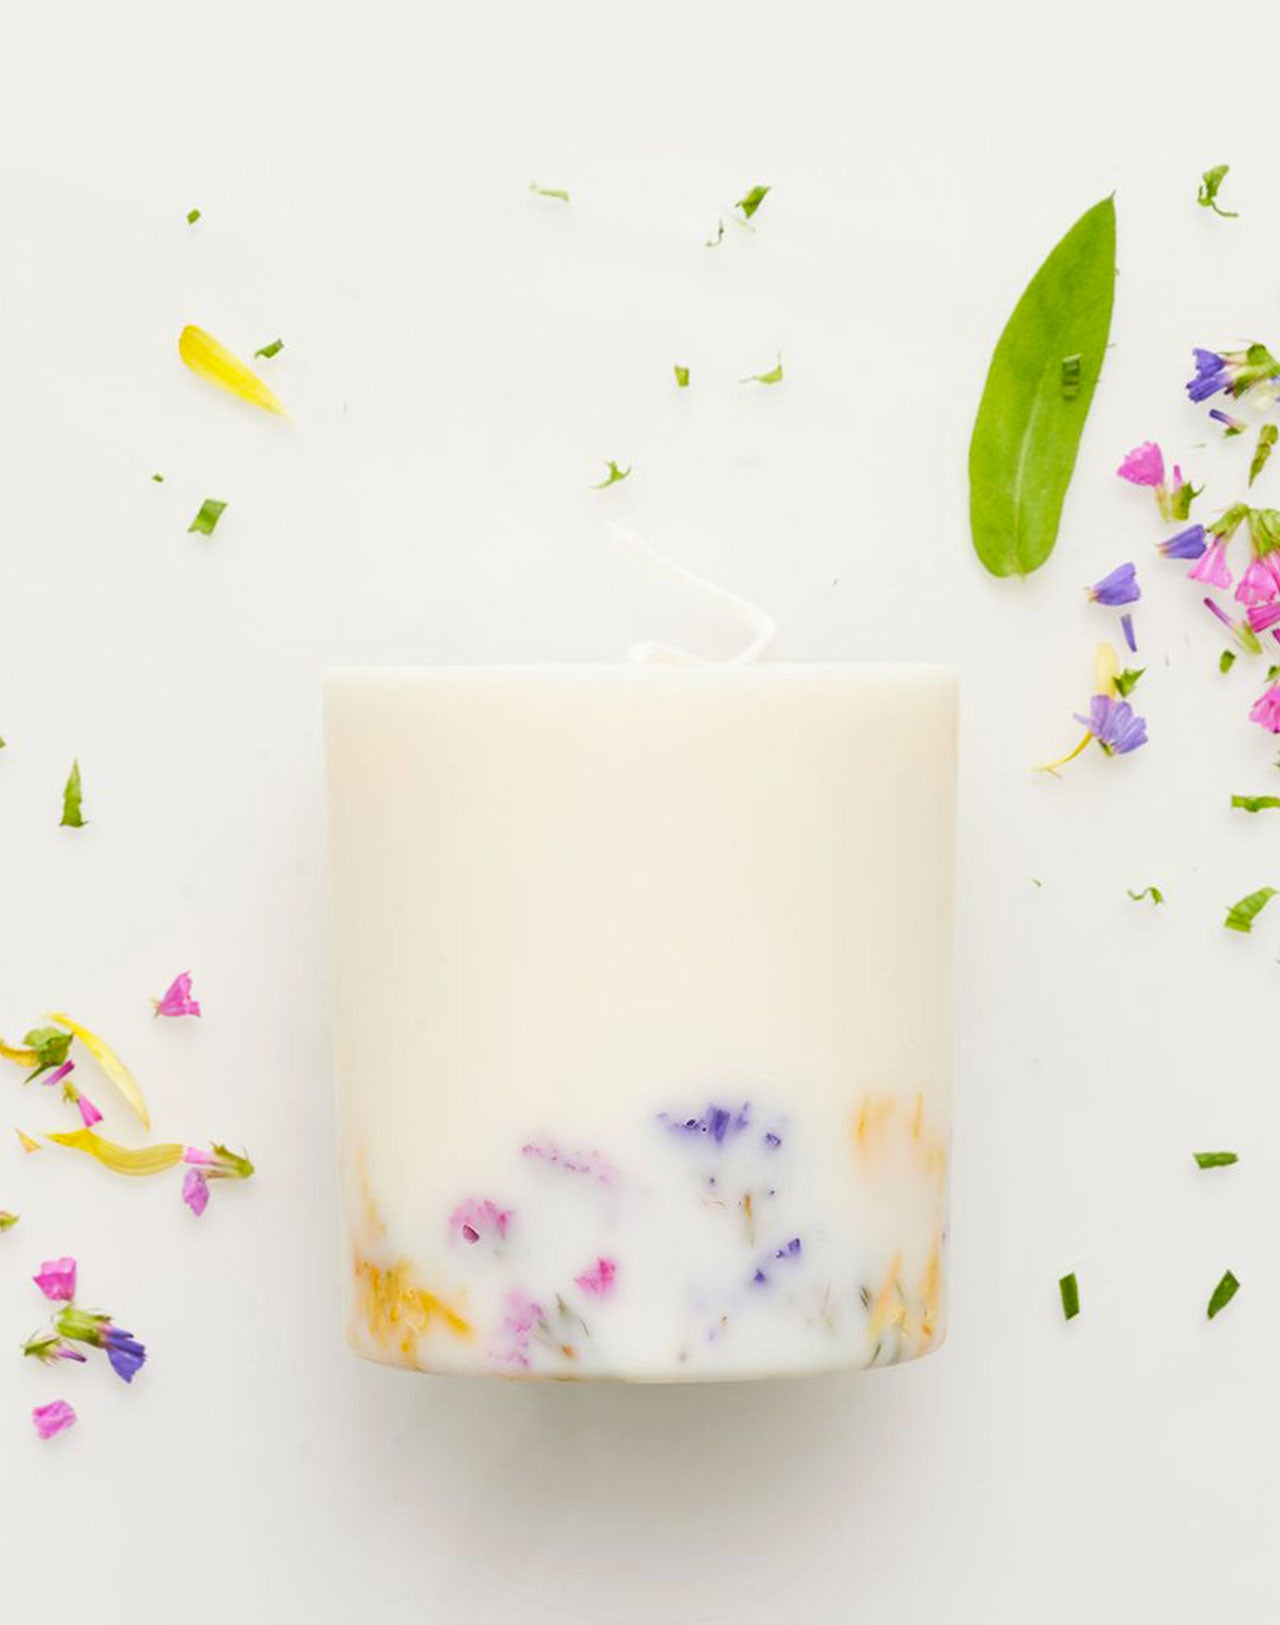 Bougie Wild Flowers Munio Candela vue de face